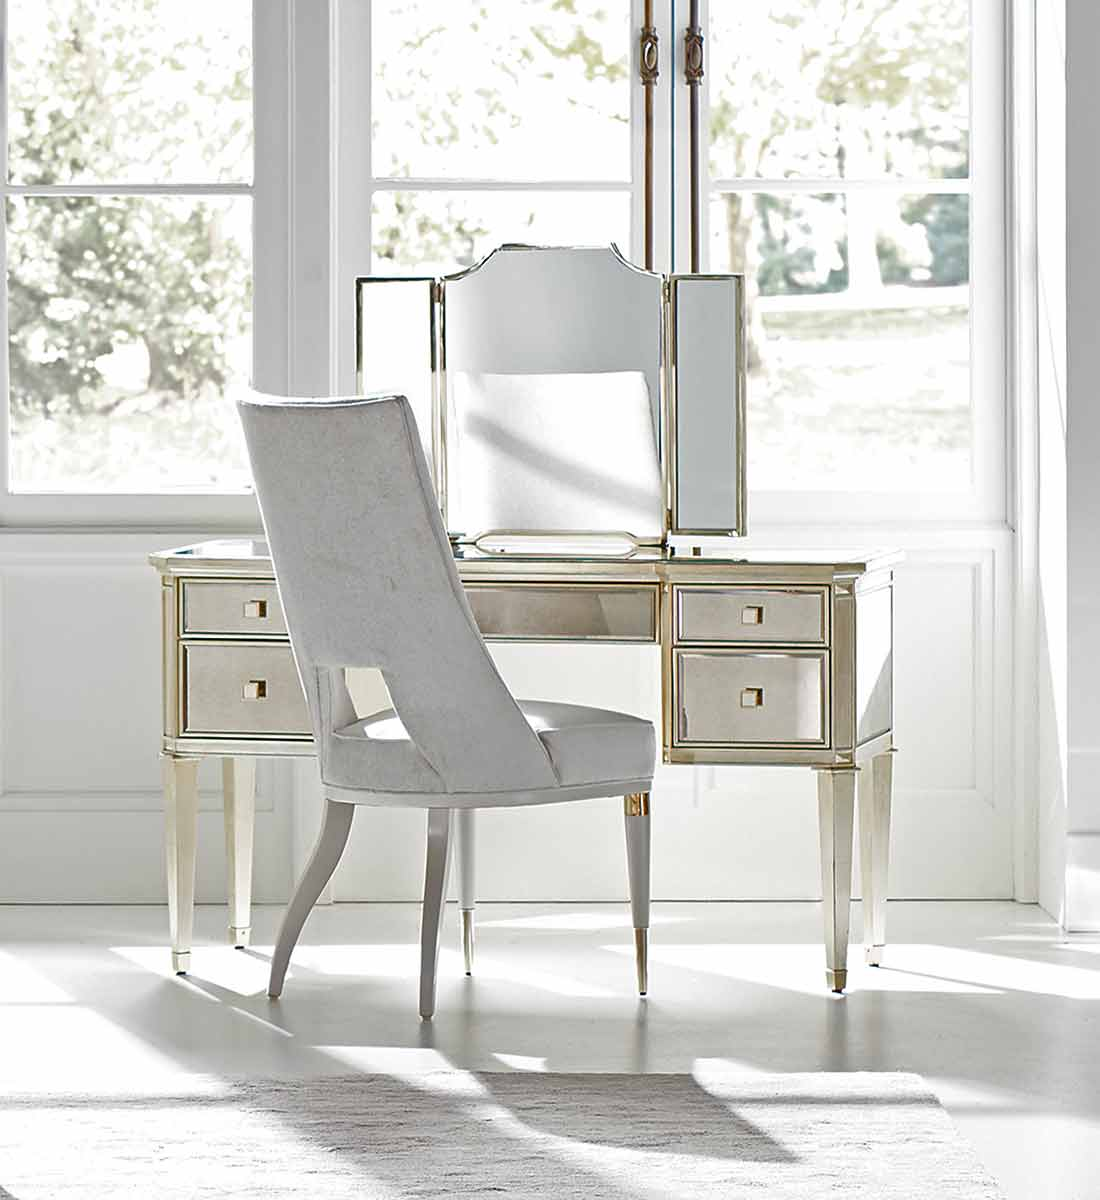 Reflective Thoughts Dressing Table or Desk   Place Direct   Contemporary Luxury Exclusive Designer Modern High End Furniture   Sandton Johannesburg